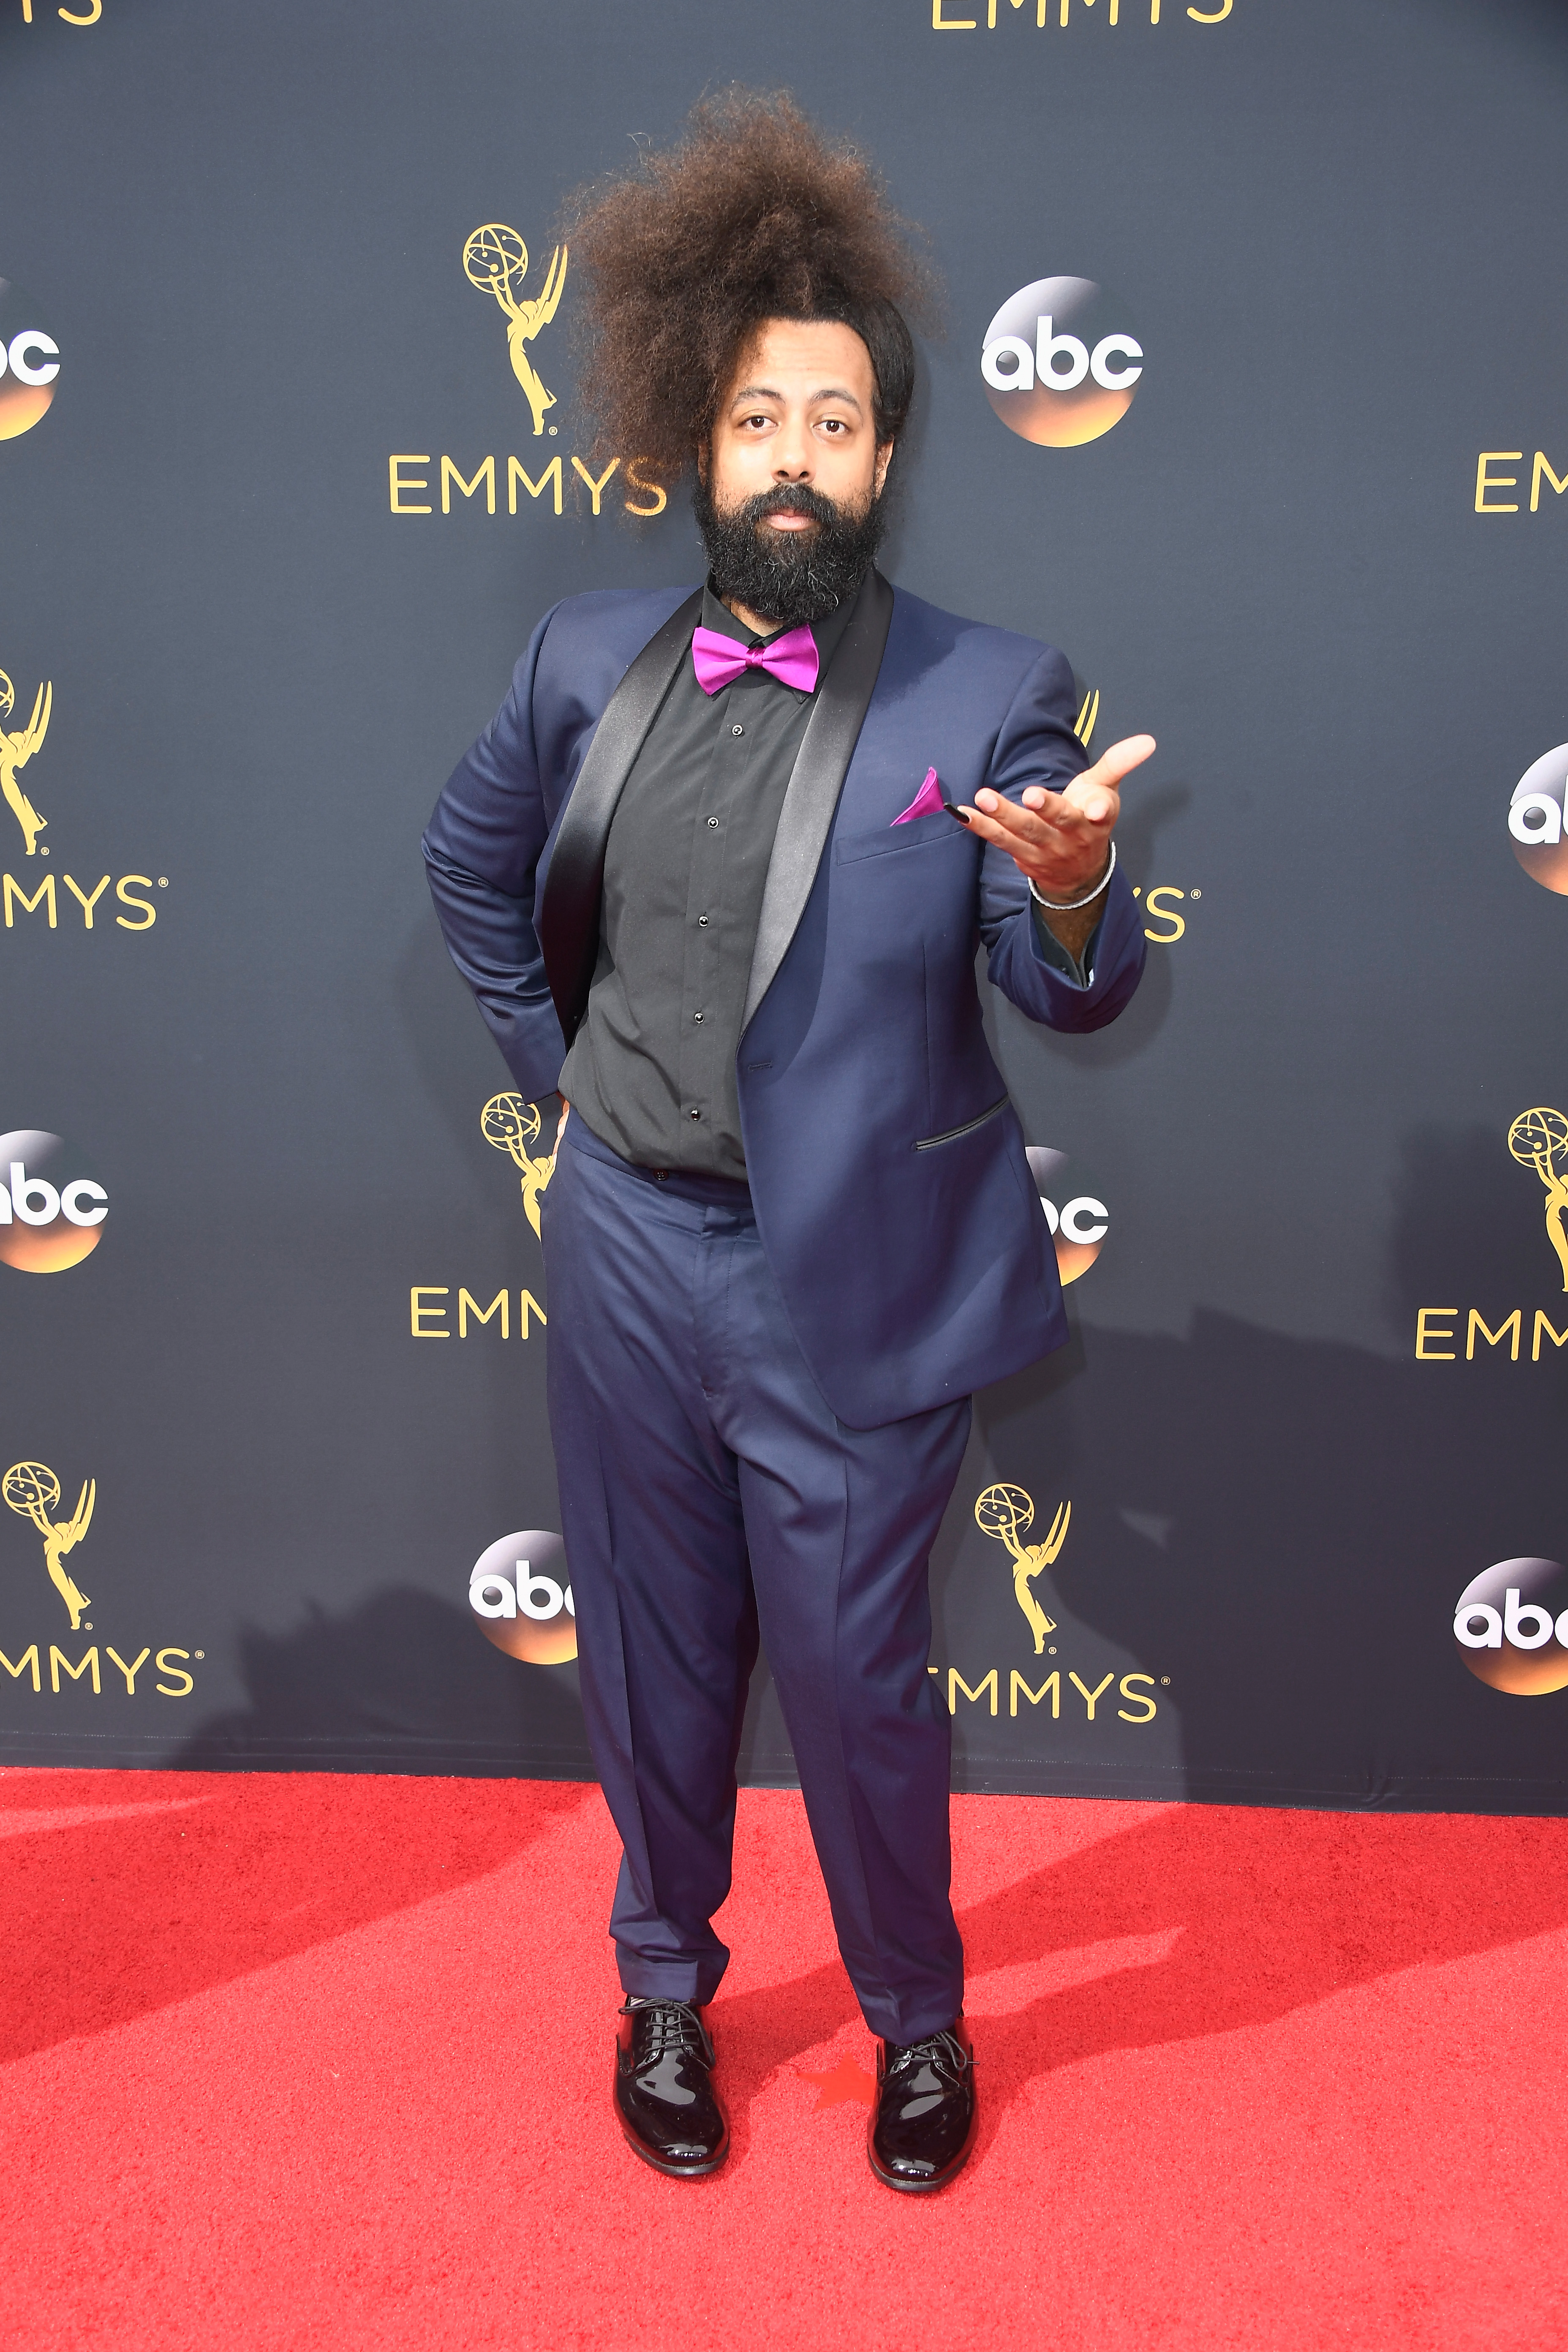 Reggie Watts arrives at the 68th Annual Primetime Emmy Awards at Microsoft Theater on Sept. 18, 2016 in Los Angeles.